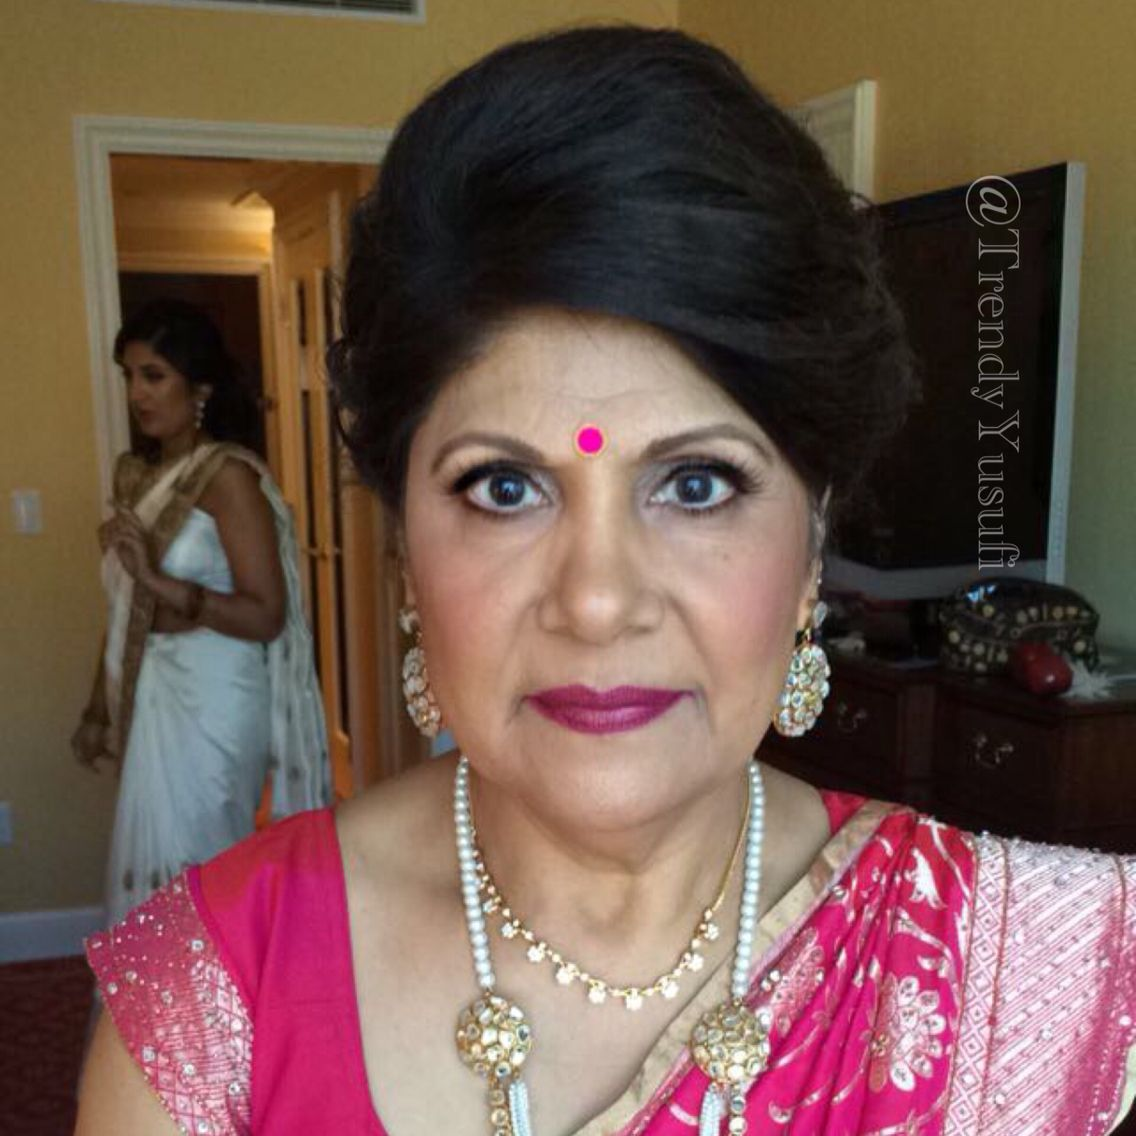 Mother Of The Groom Makeup And Hairstyling Indian Bridal Hairstyling And Makeup By Michele Yusufi Email Her For Bookings Mi Hair Styles Beauty Hair Makeup